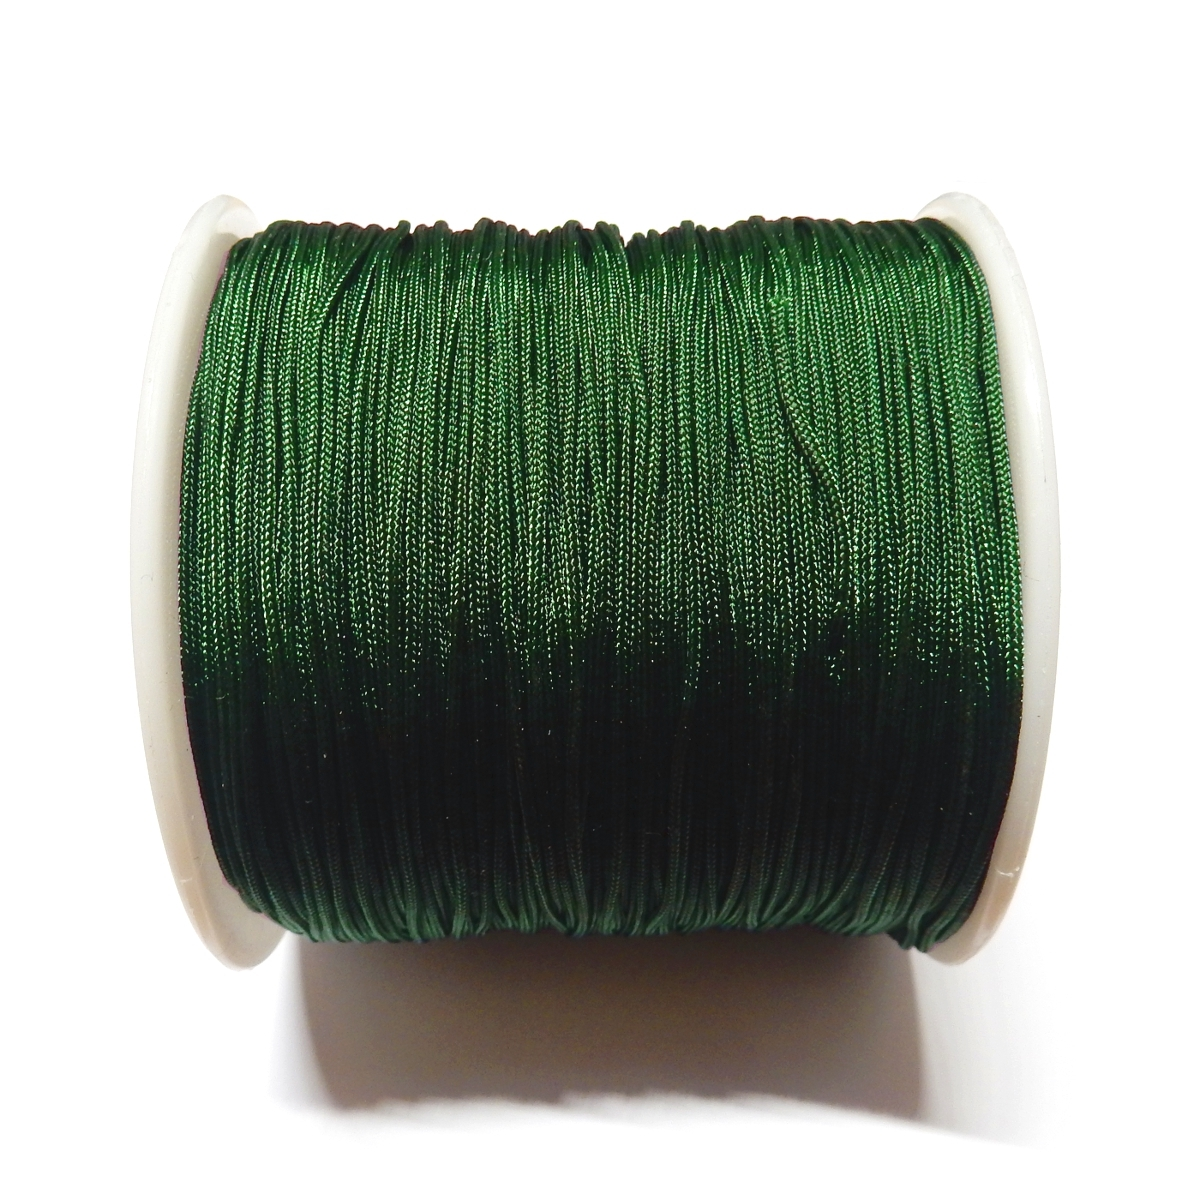 Nylon Cord 0.7mm - Dark Green 257